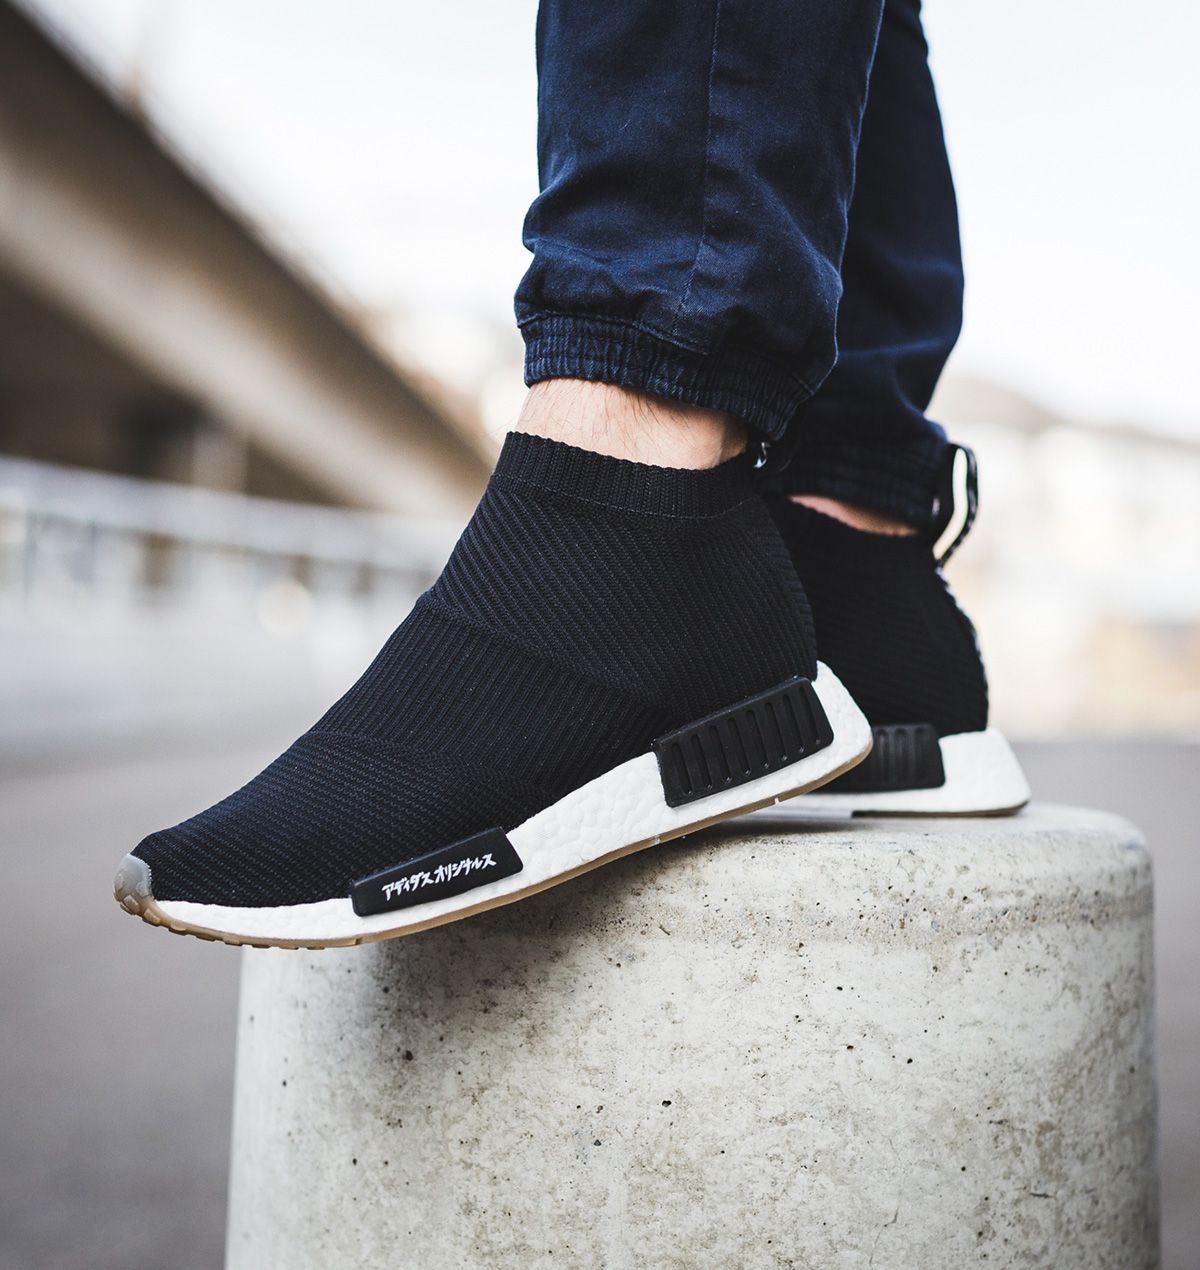 2635608dda4d5 On-Foot  MIKITYPE x United Arrows Sons x adidas NMD CS1 Primeknit - EU  Kicks  Sneaker Magazine